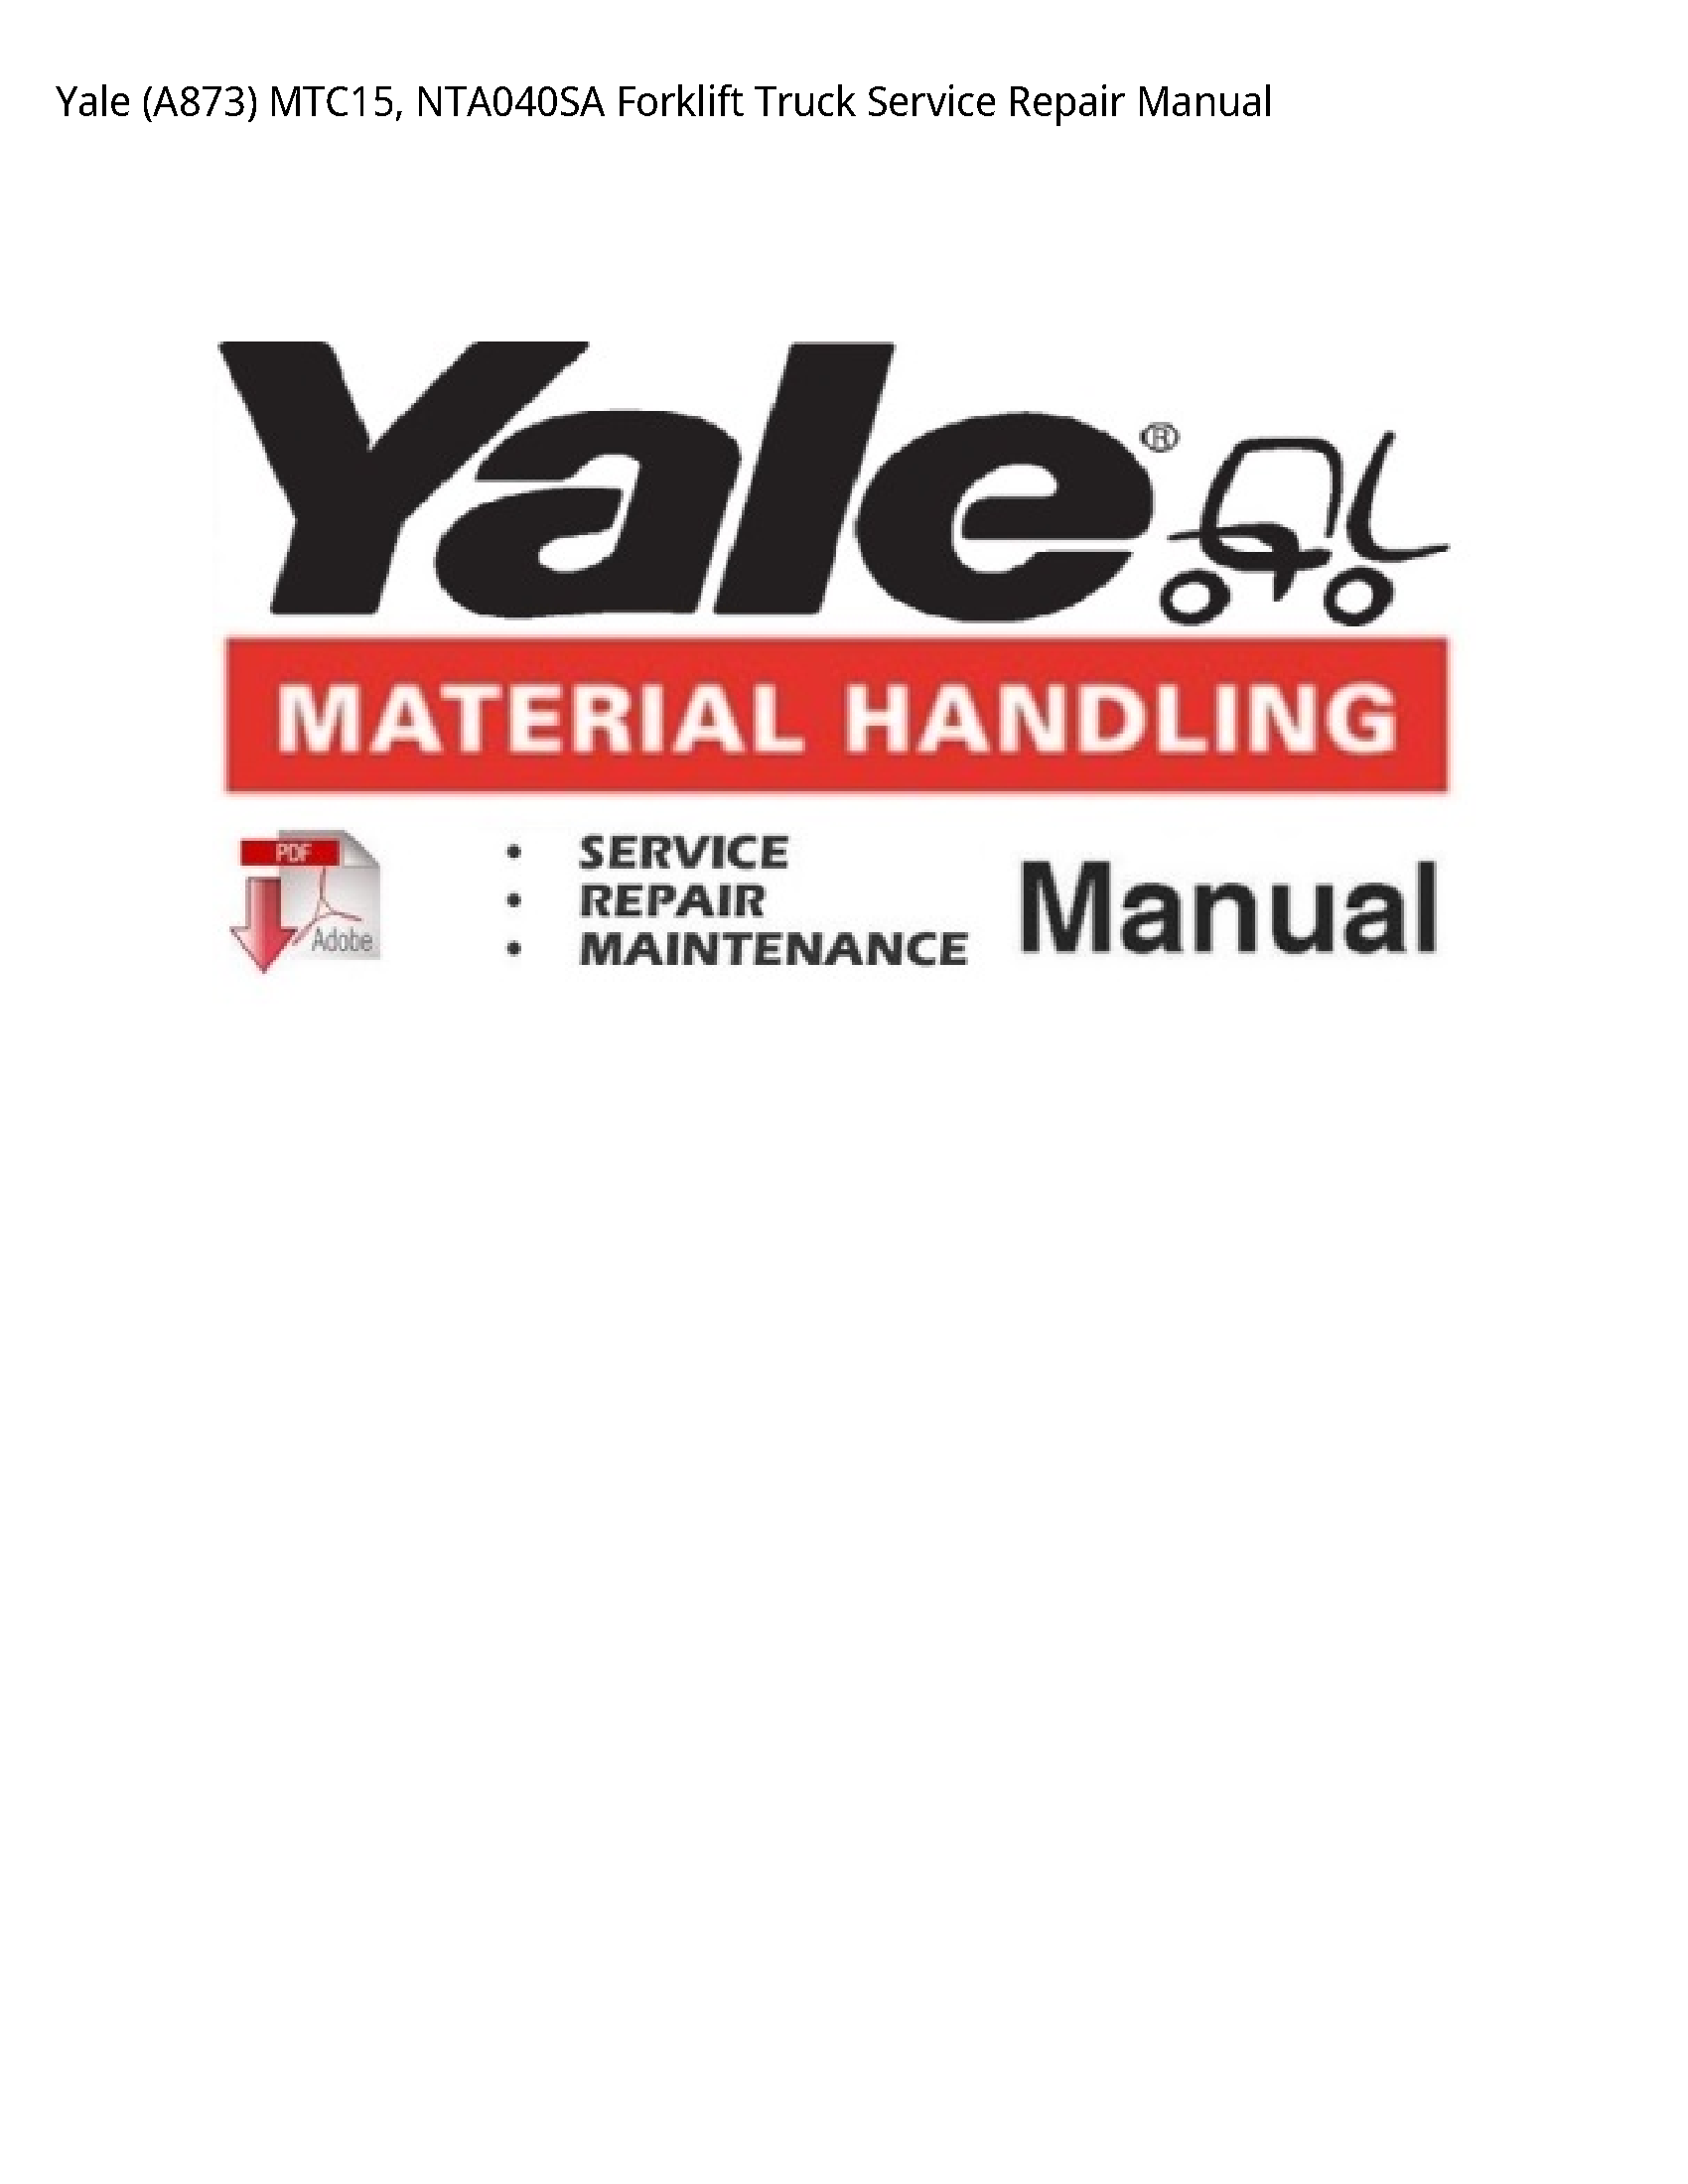 Yale (A873) Forklift Truck manual